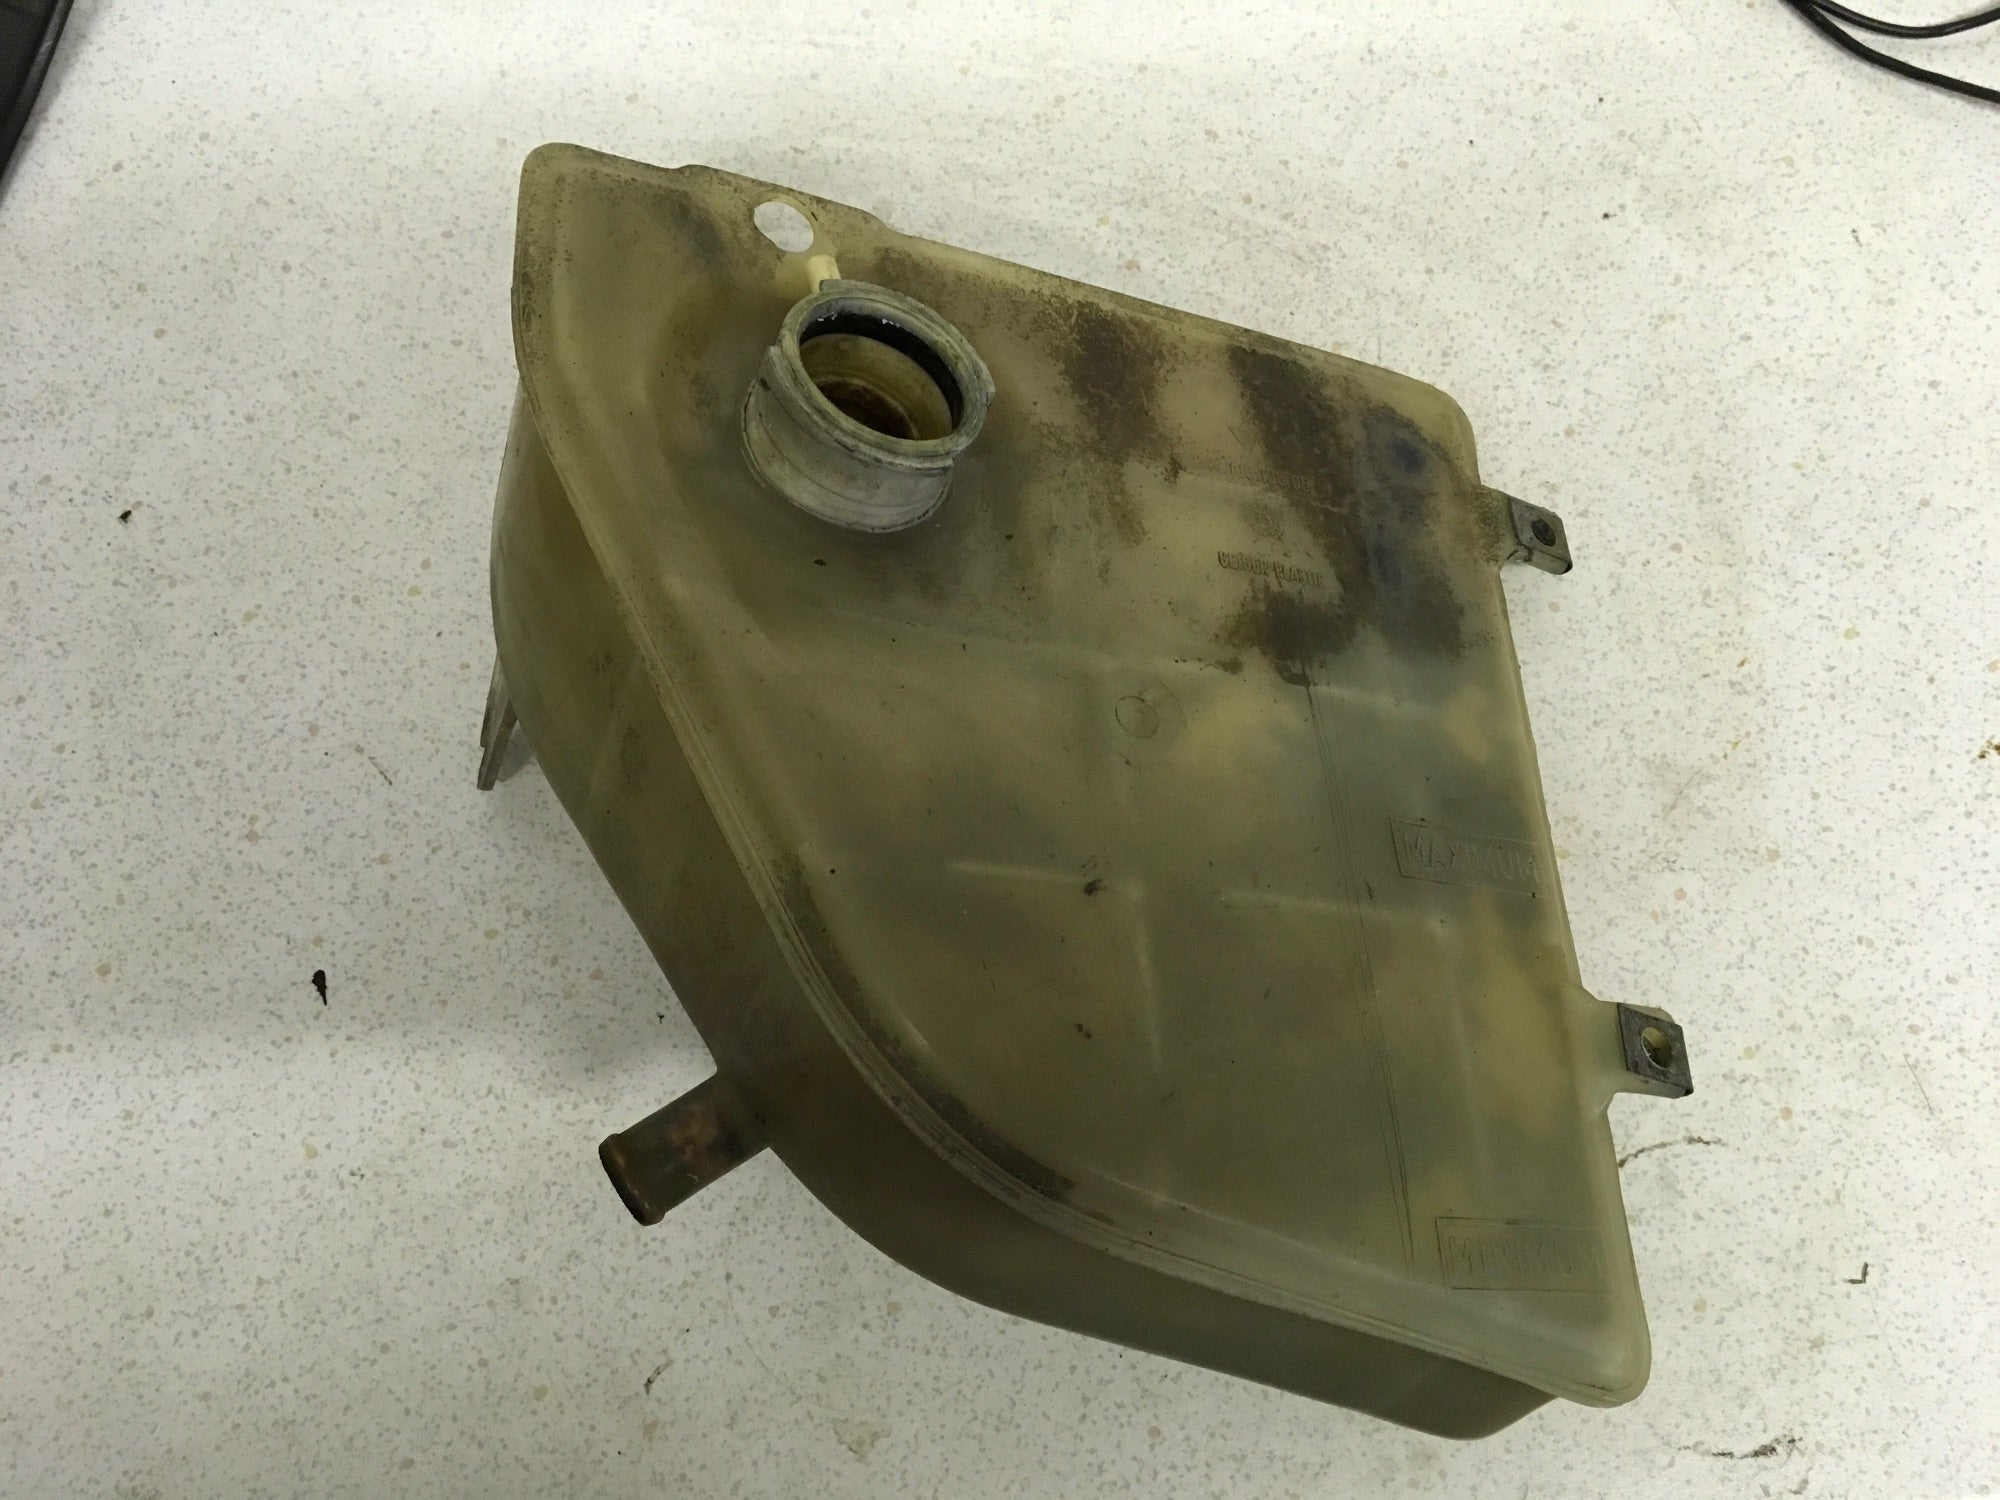 Porsche 944 expansion tank. 944 106 125 05 ((B9)' - Woolies Workshop - Porsche 924 944 spares